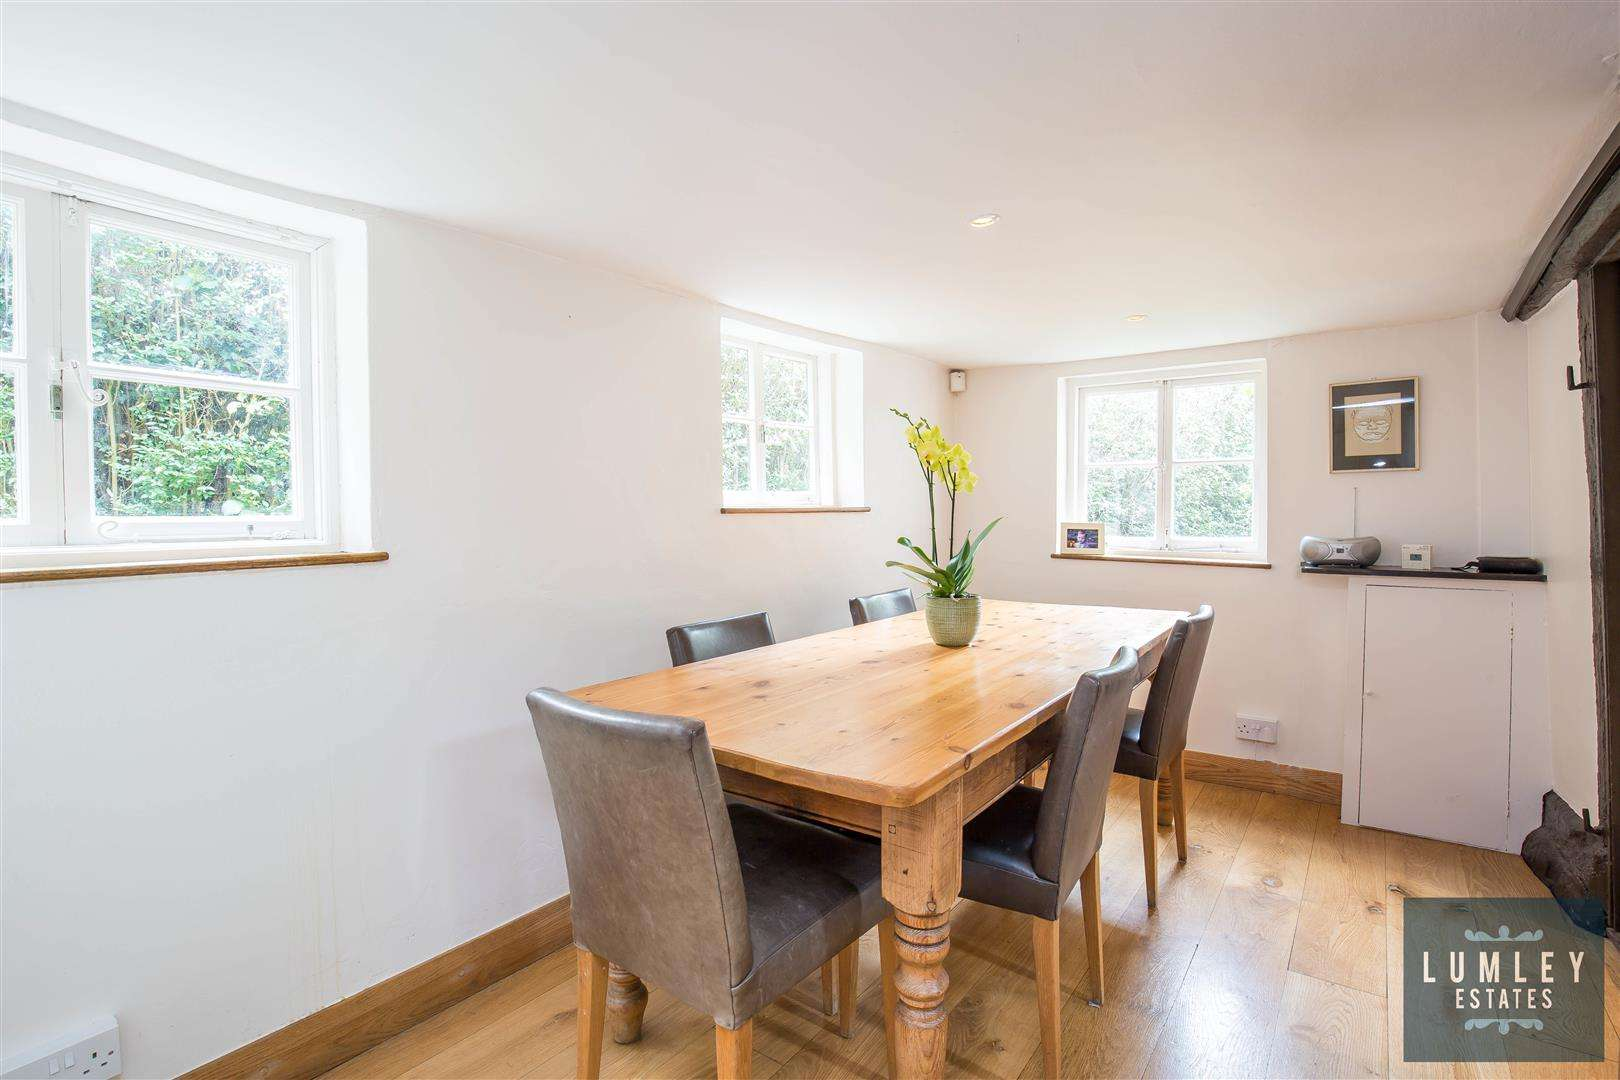 4 bed for sale in Park Street - (Property Image 3)